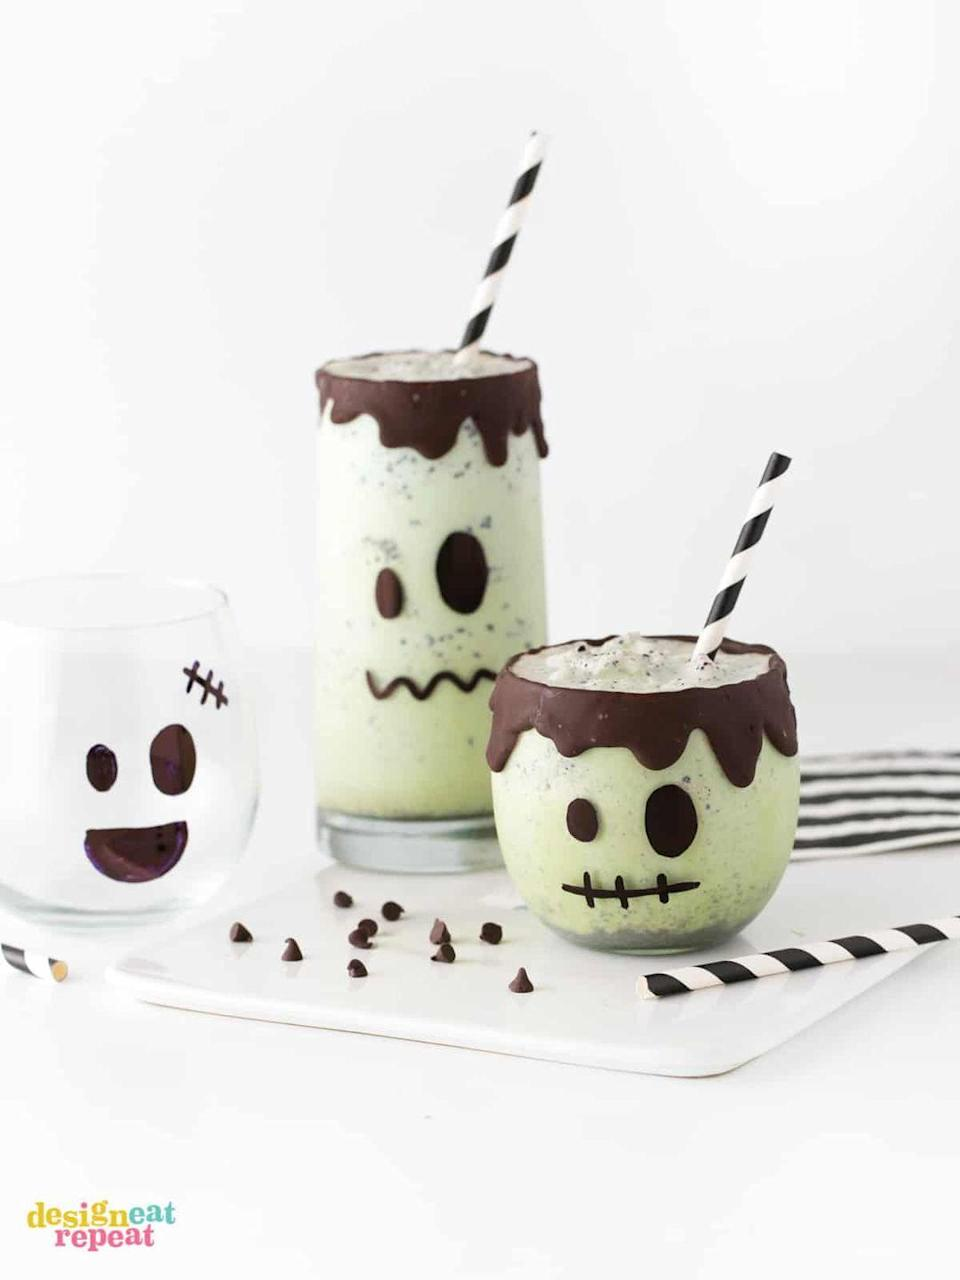 """<p>Mint chip ice cream and a drip effect on the rim make a standard milkshake fit for the spookiest day of the year. </p><p><a class=""""link rapid-noclick-resp"""" href=""""https://www.designeatrepeat.com/easy-frankenstein-halloween-milkshakes/"""" rel=""""nofollow noopener"""" target=""""_blank"""" data-ylk=""""slk:GET THE RECIPE"""">GET THE RECIPE</a></p>"""